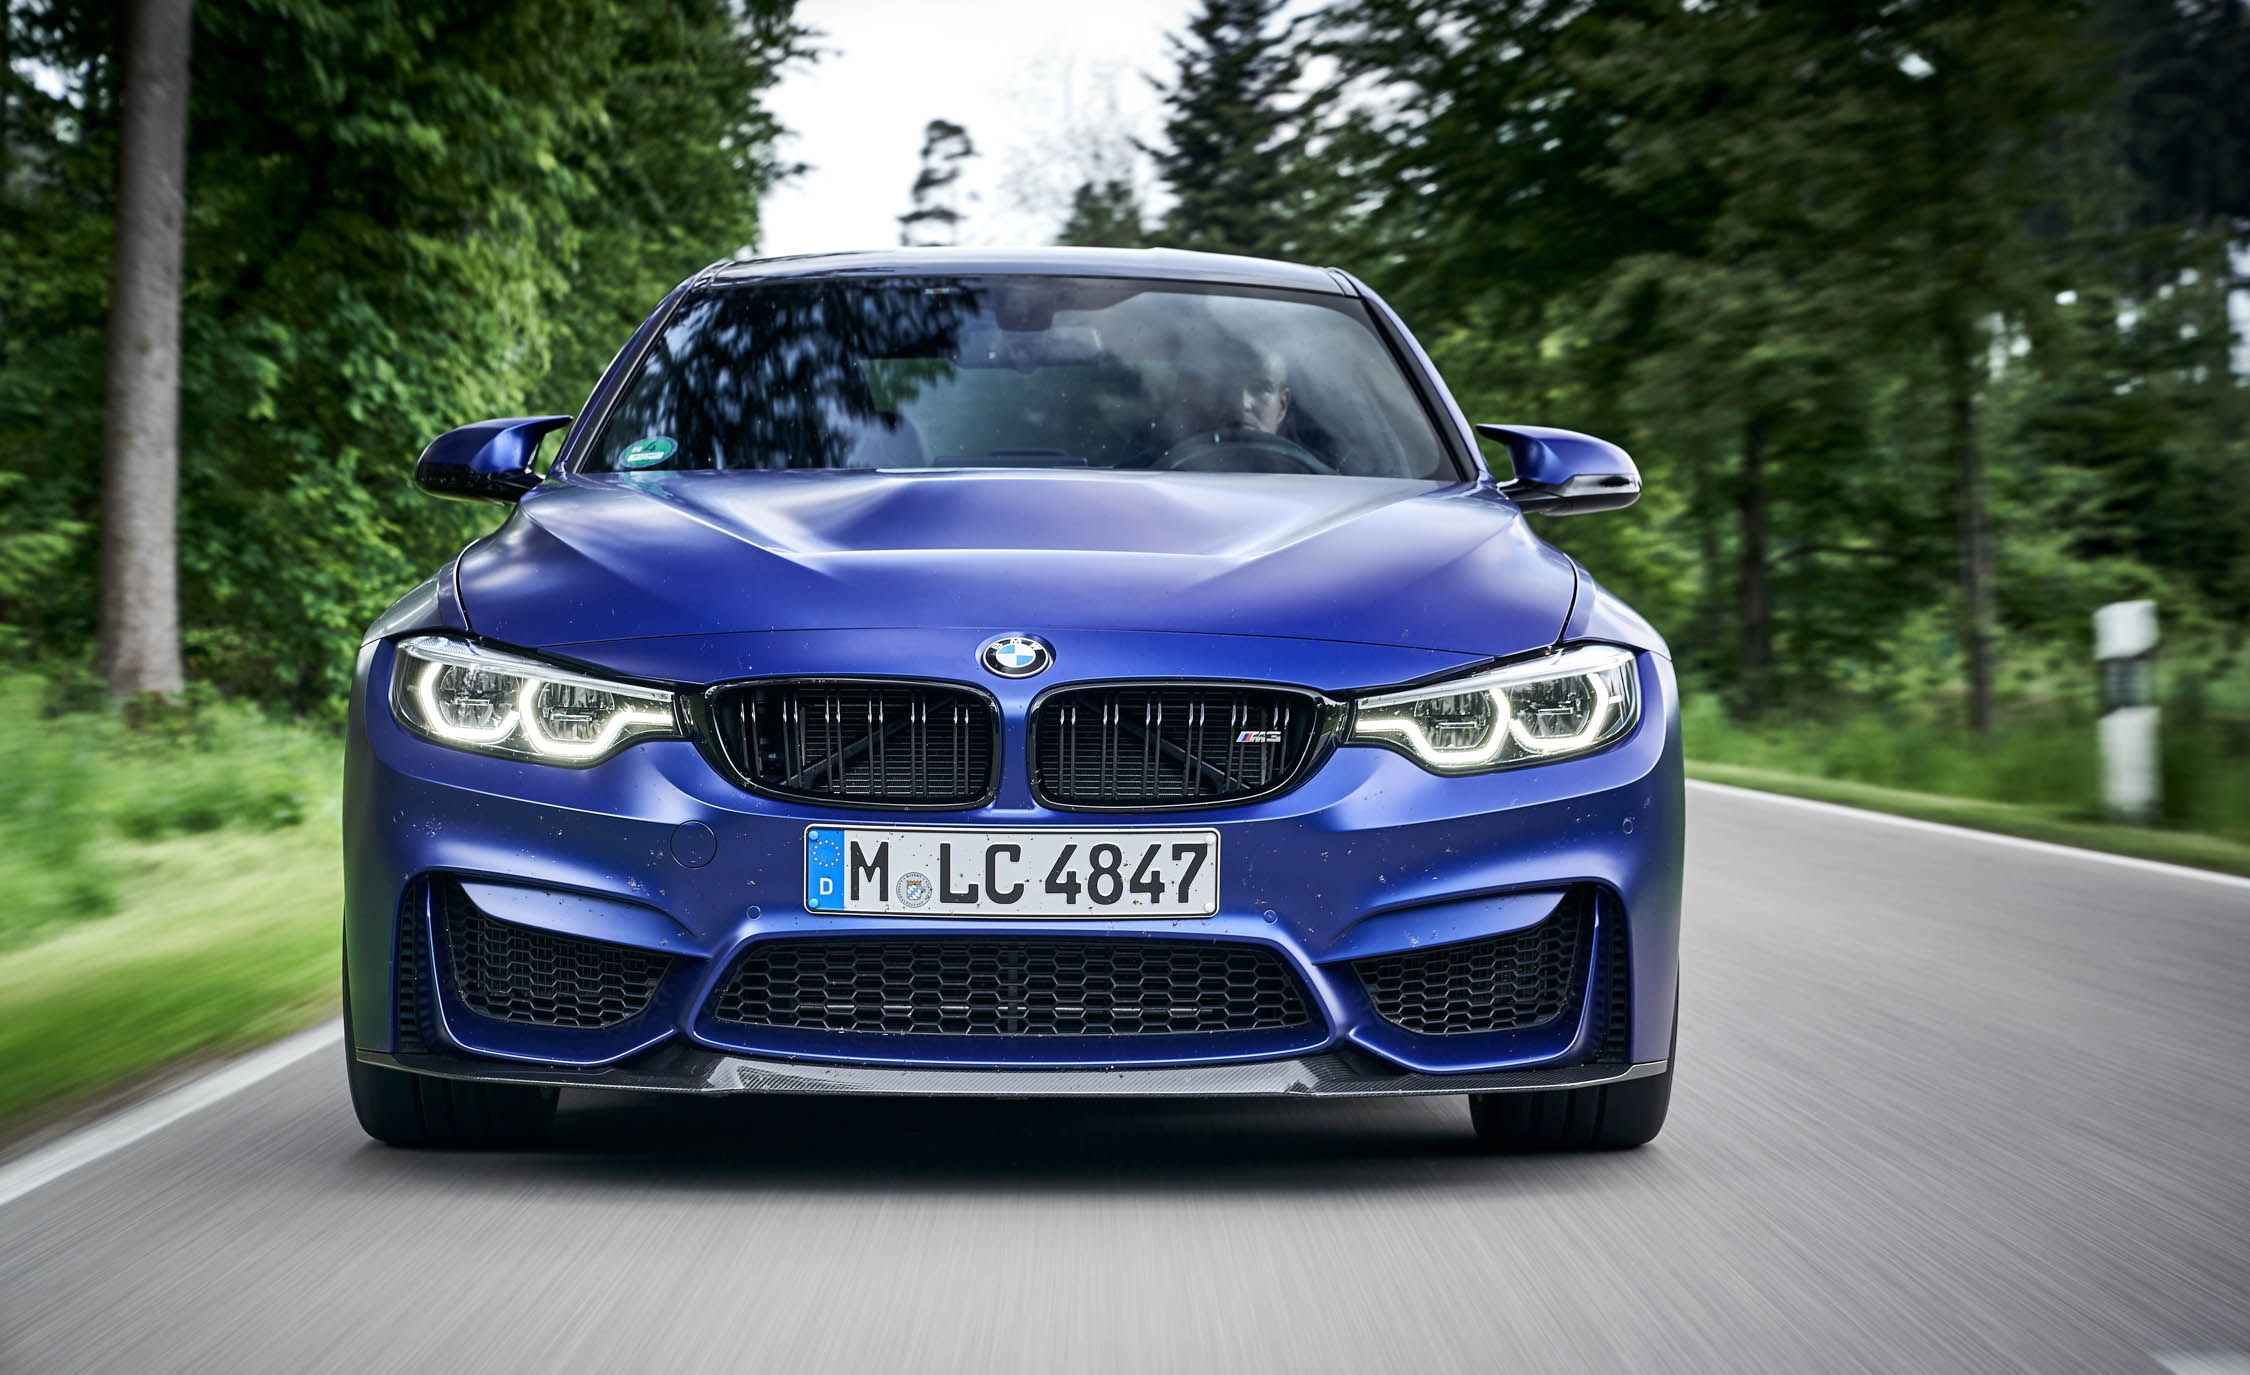 BMW M3 Reviews BMW M3 Price s and Specs